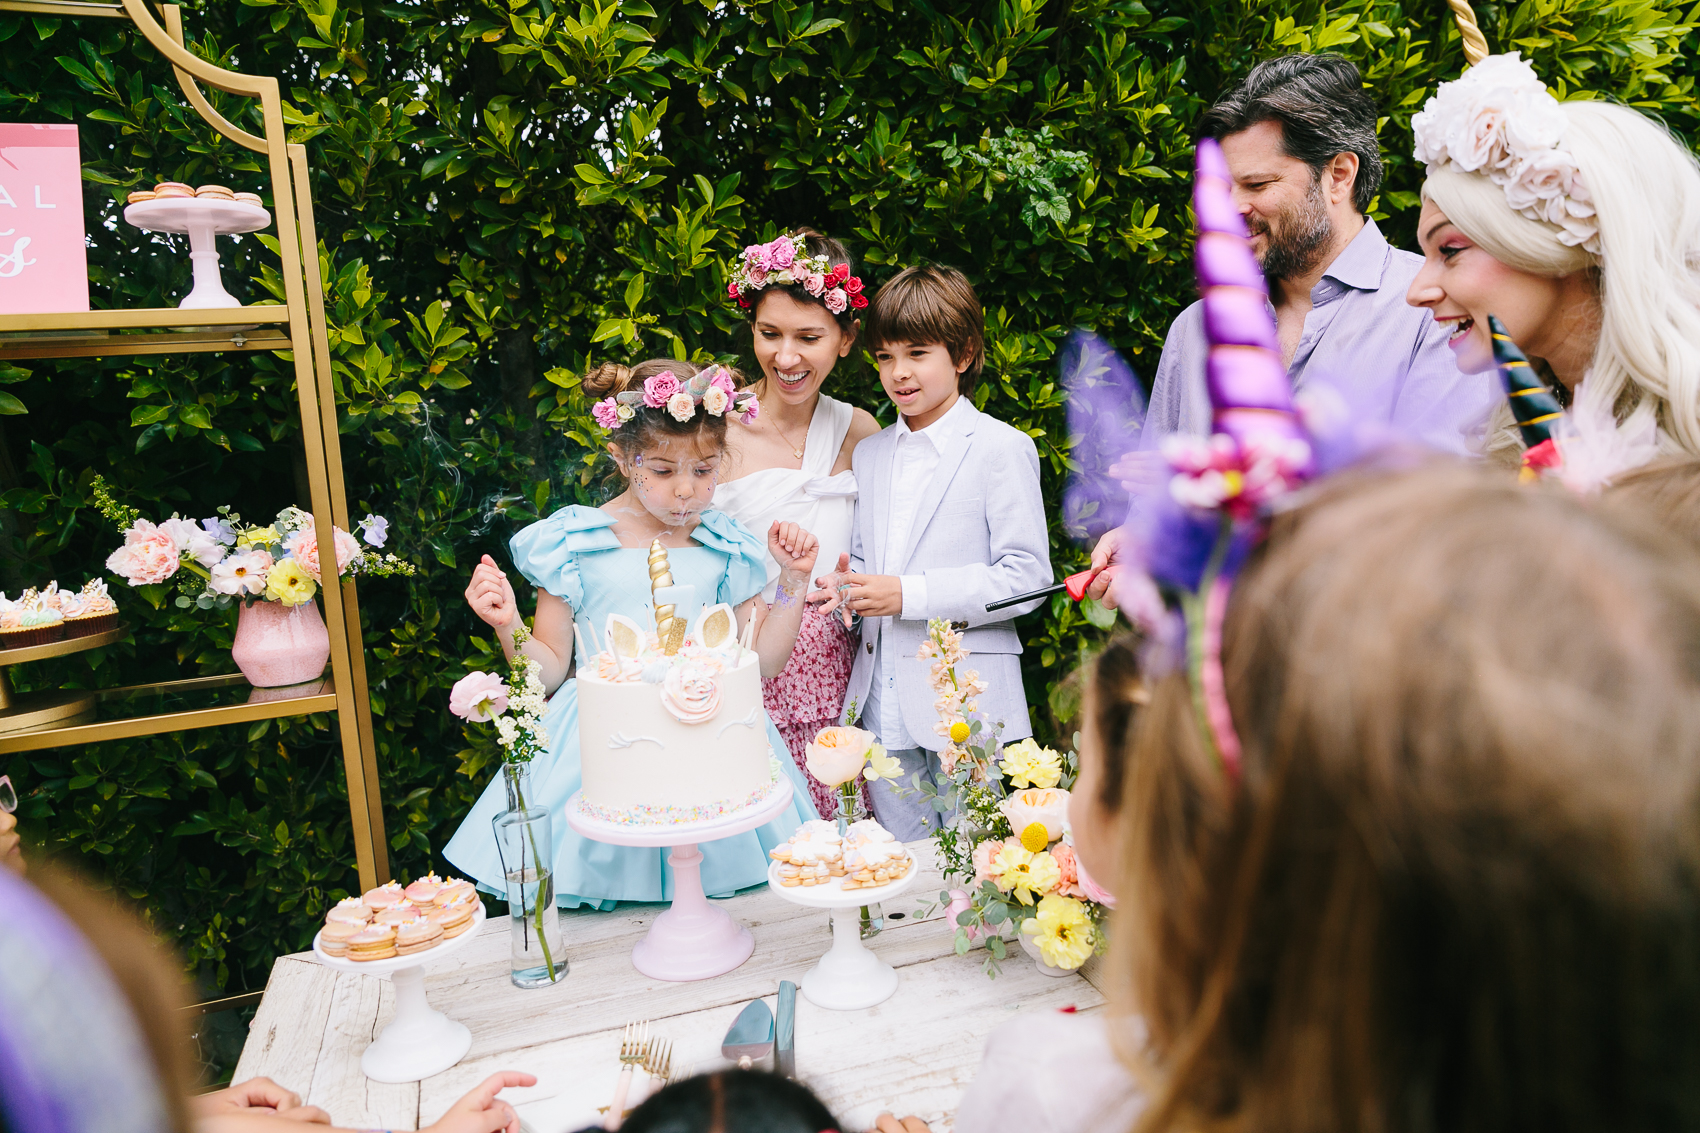 Los_Angeles_Family_Photographer_Luxury_Childrens_Party_Beverly_Hills_Unicorn_Birthday_Party-1365.jpg